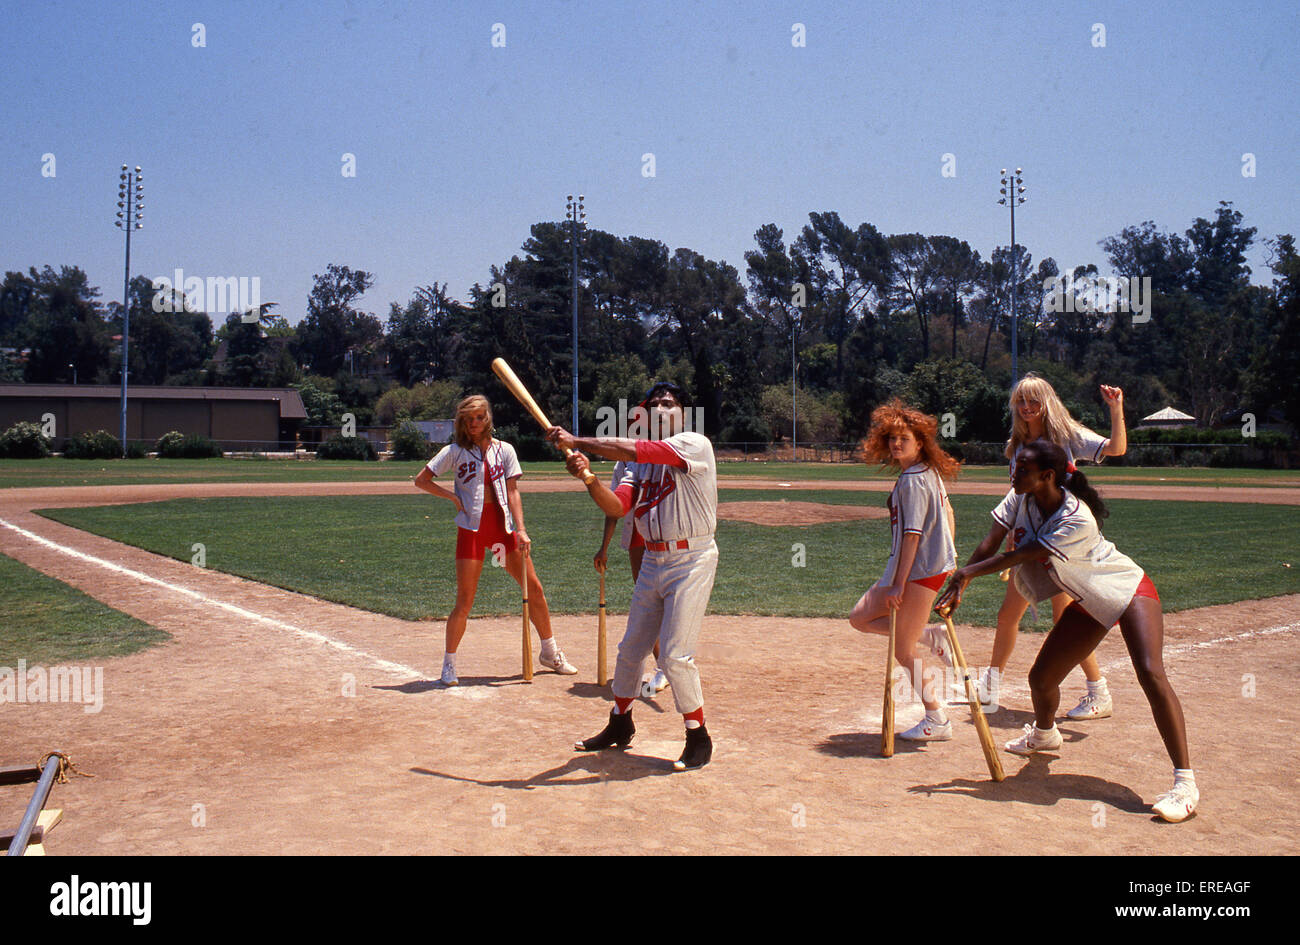 Portrait of Little Richard on a baseball pitch, with posed female fielders, Los Angeles, USA. Little Richard, American - Stock Image